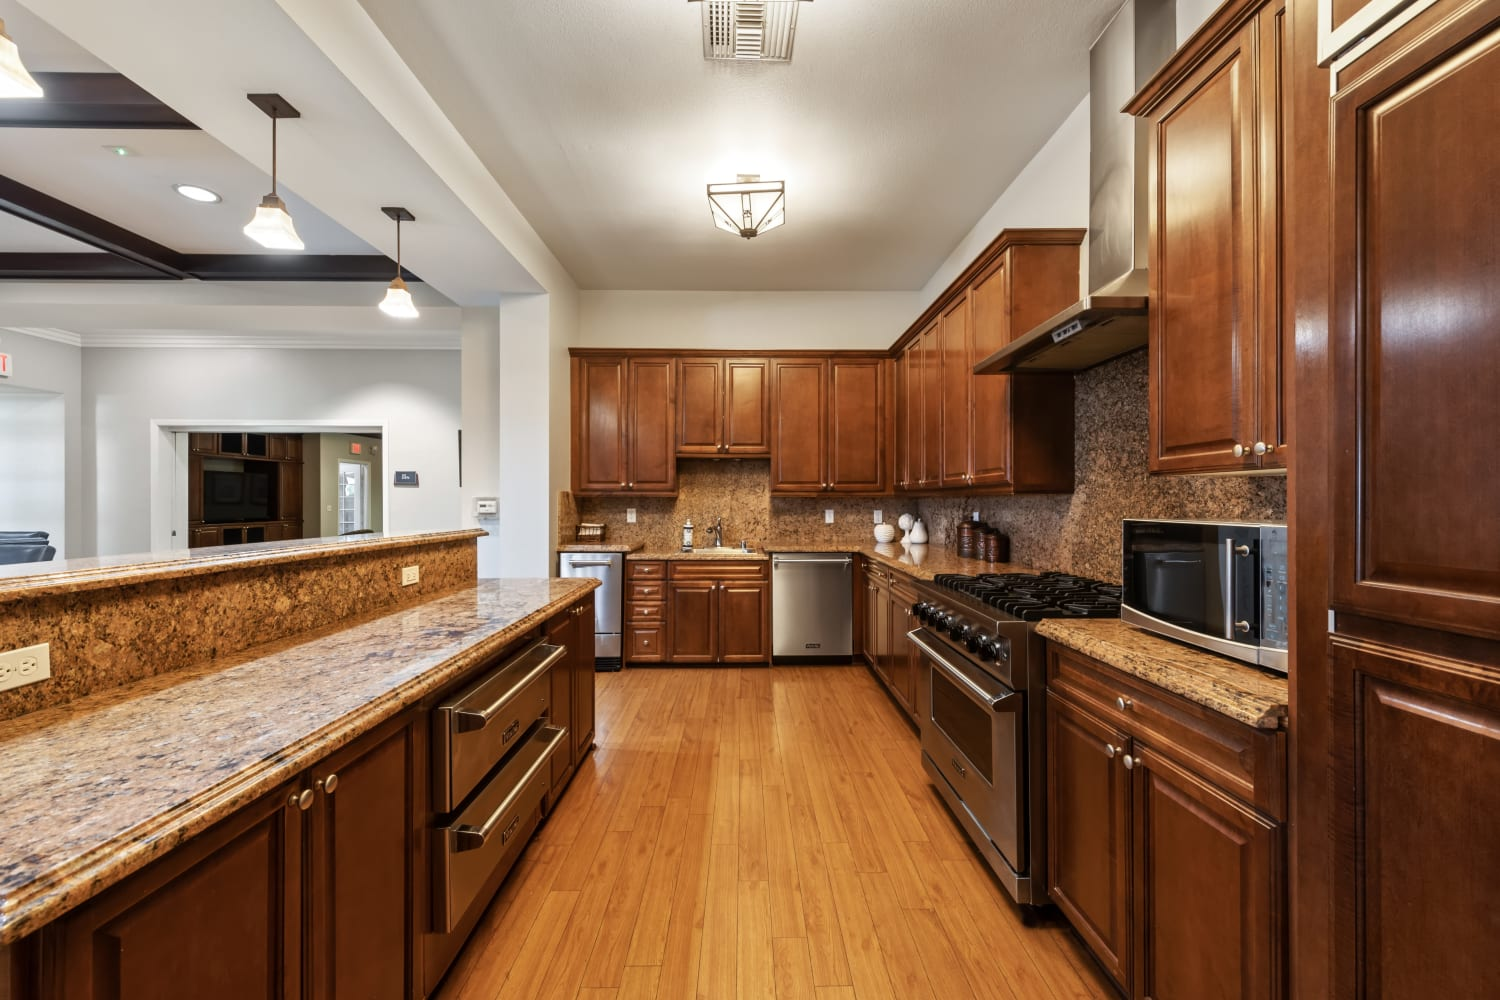 Luxury Kitchen at Apartments in Rancho Cucamonga, California